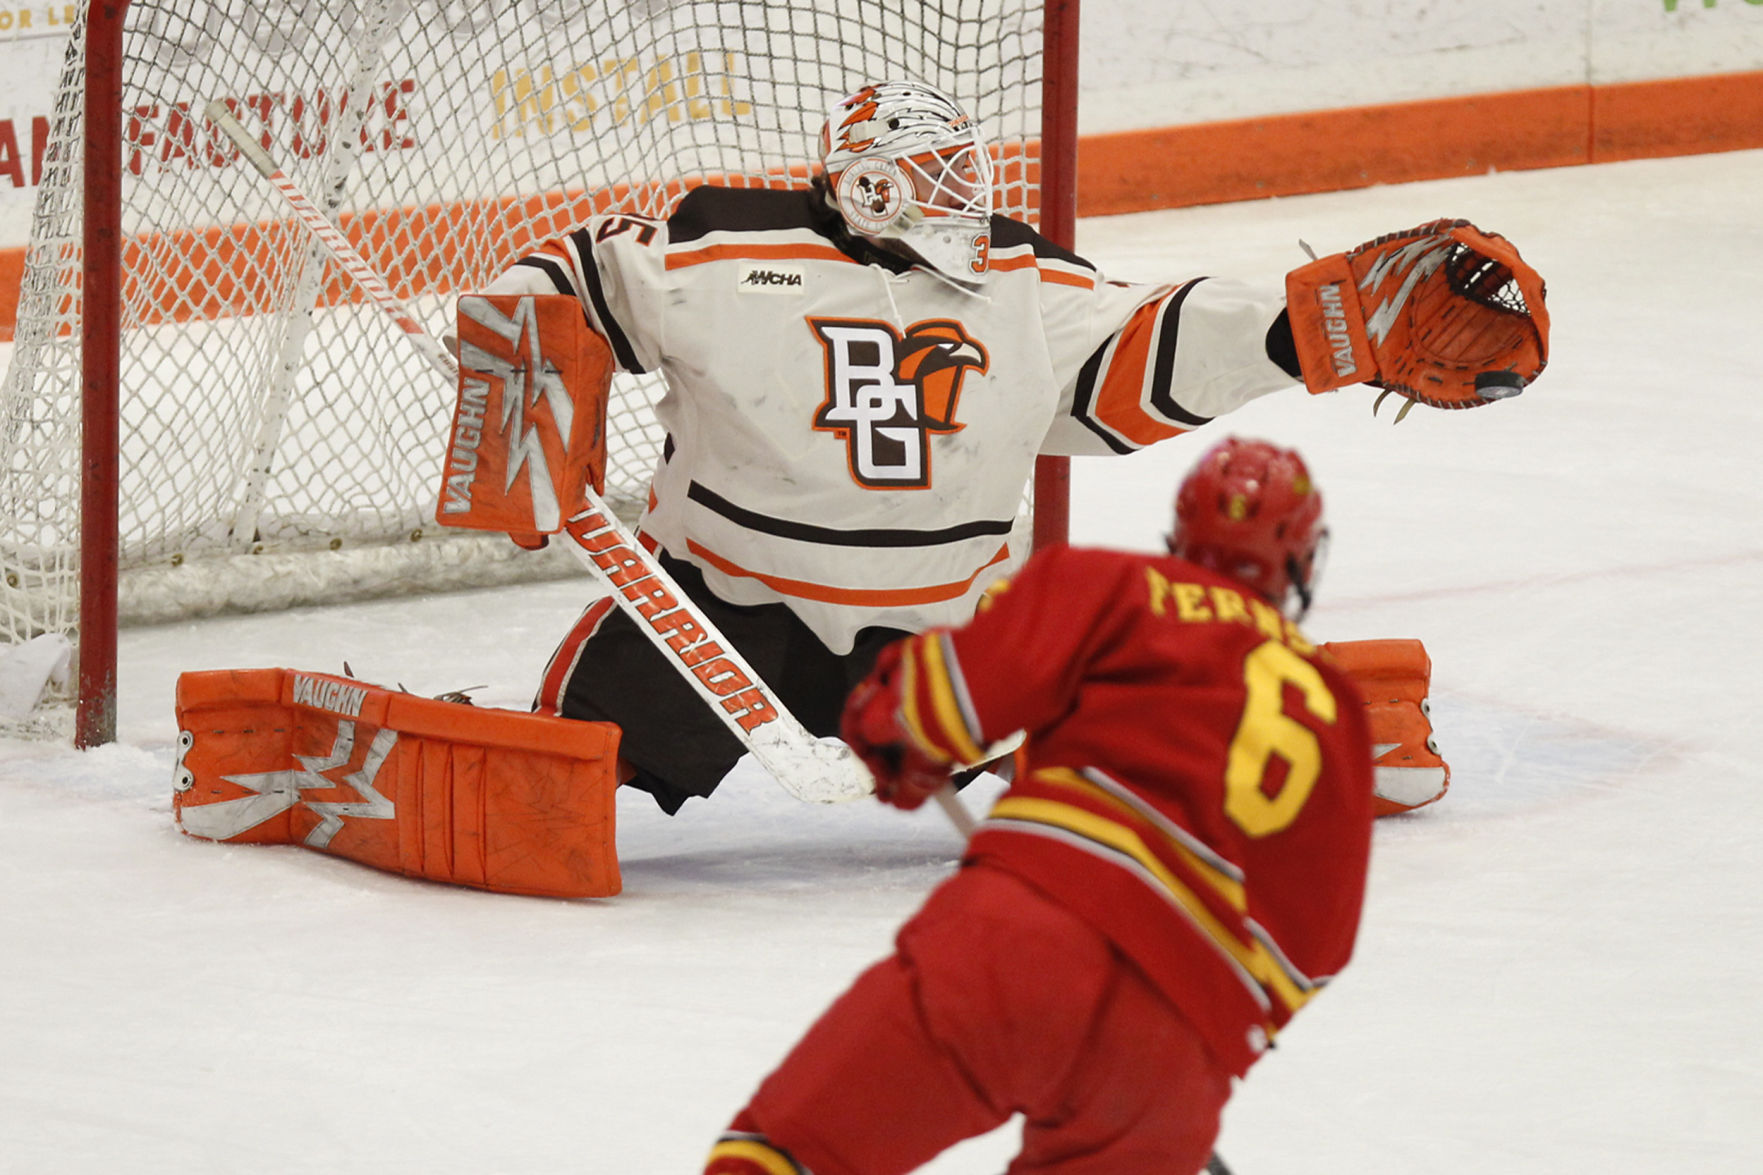 WCHA: Falcons Sweep Ferris State, Advance To 2nd Round Of Playoffs